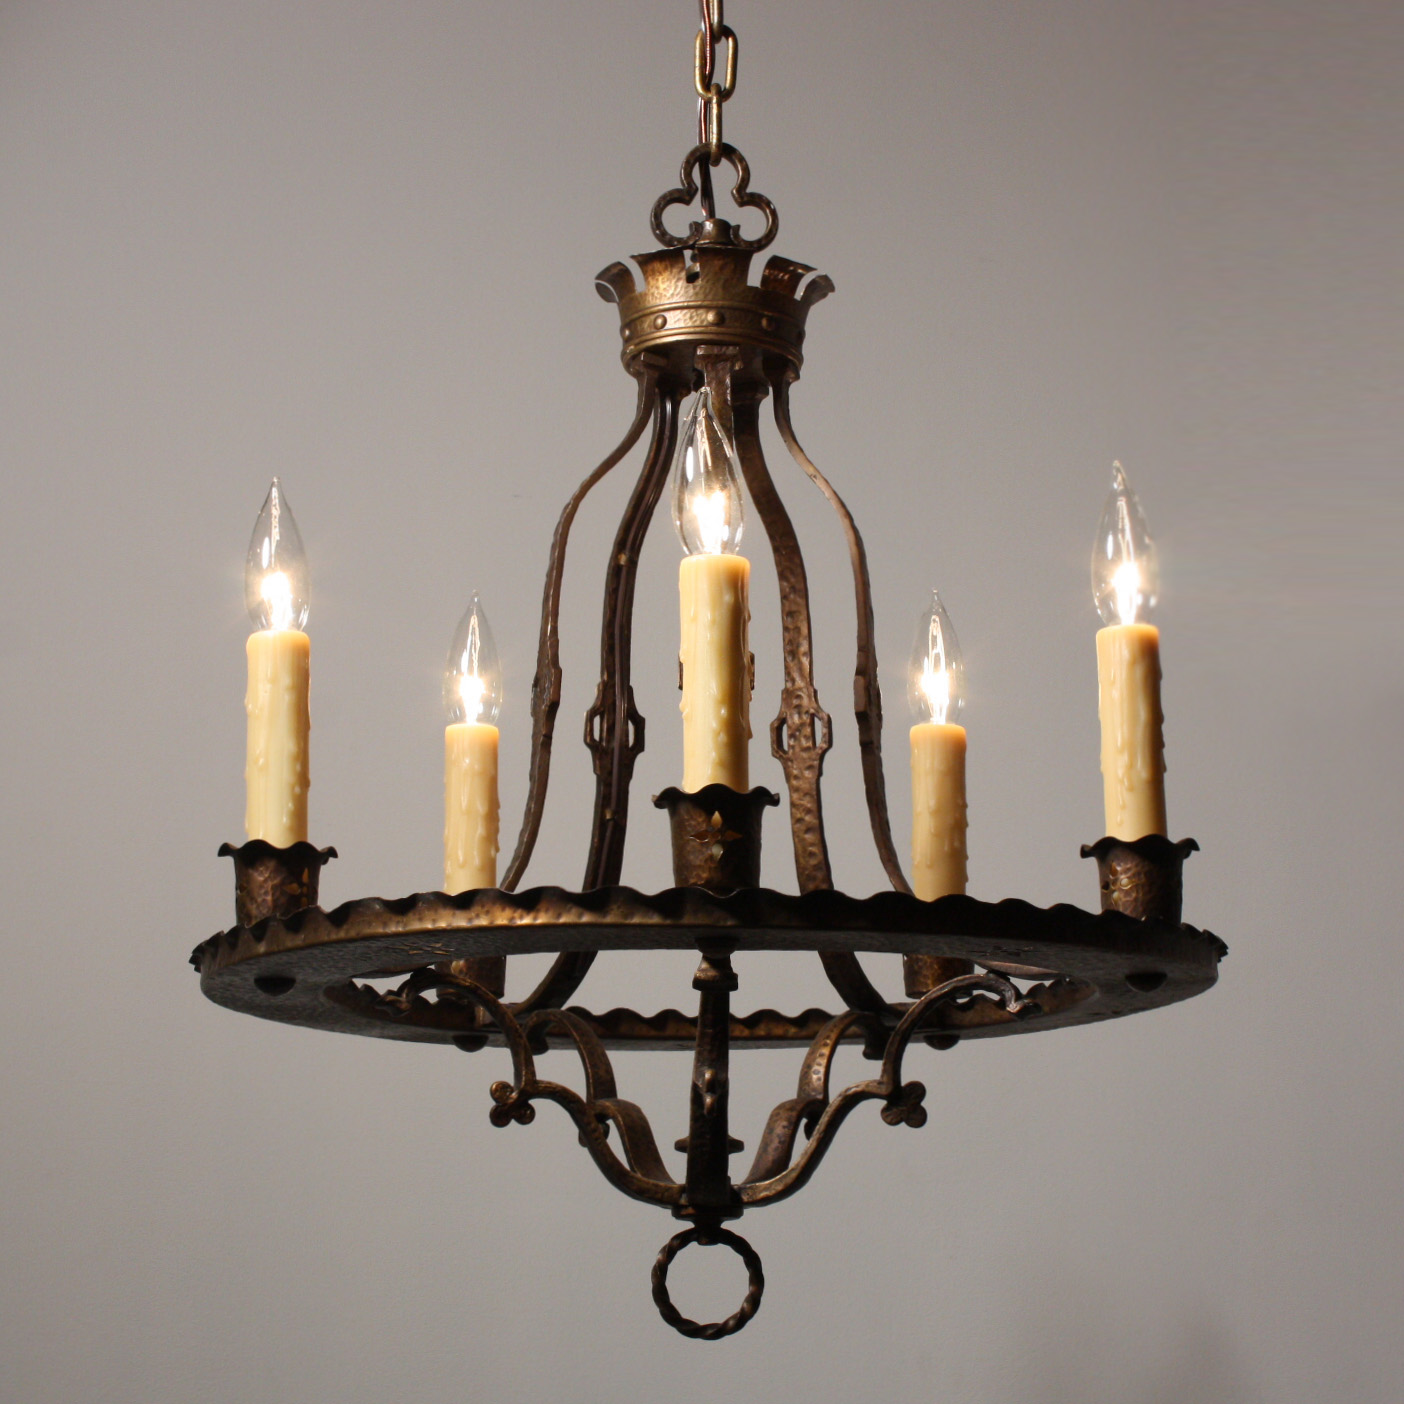 Attractive Antique Gothic Revival Five Light Cast Brass Chandelier Nc1667 Rw For Sale Antiques Com Classifieds